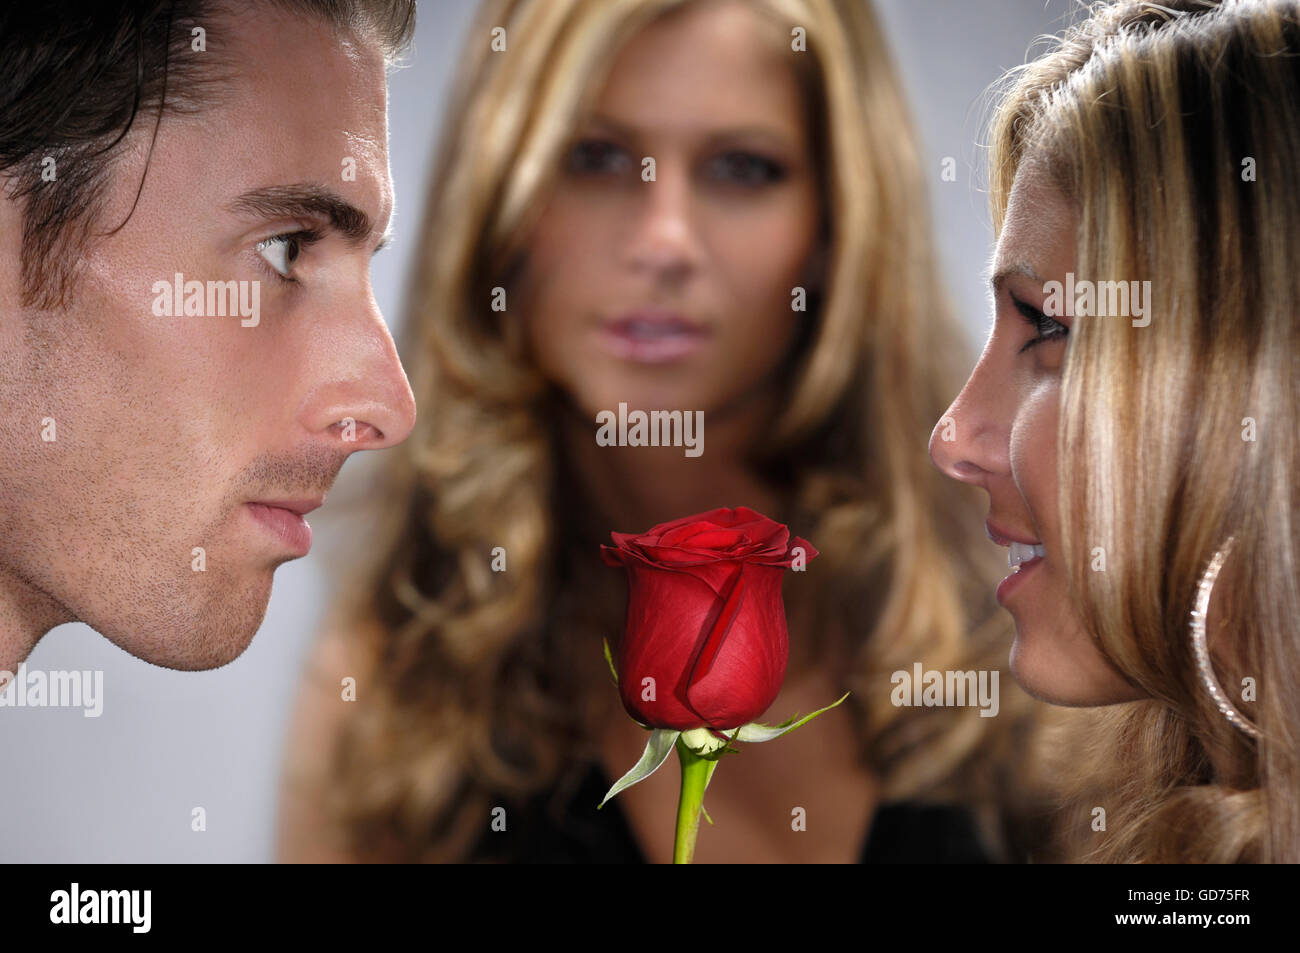 Young man with a red rose facing a young woman, being watched by another - Stock Image